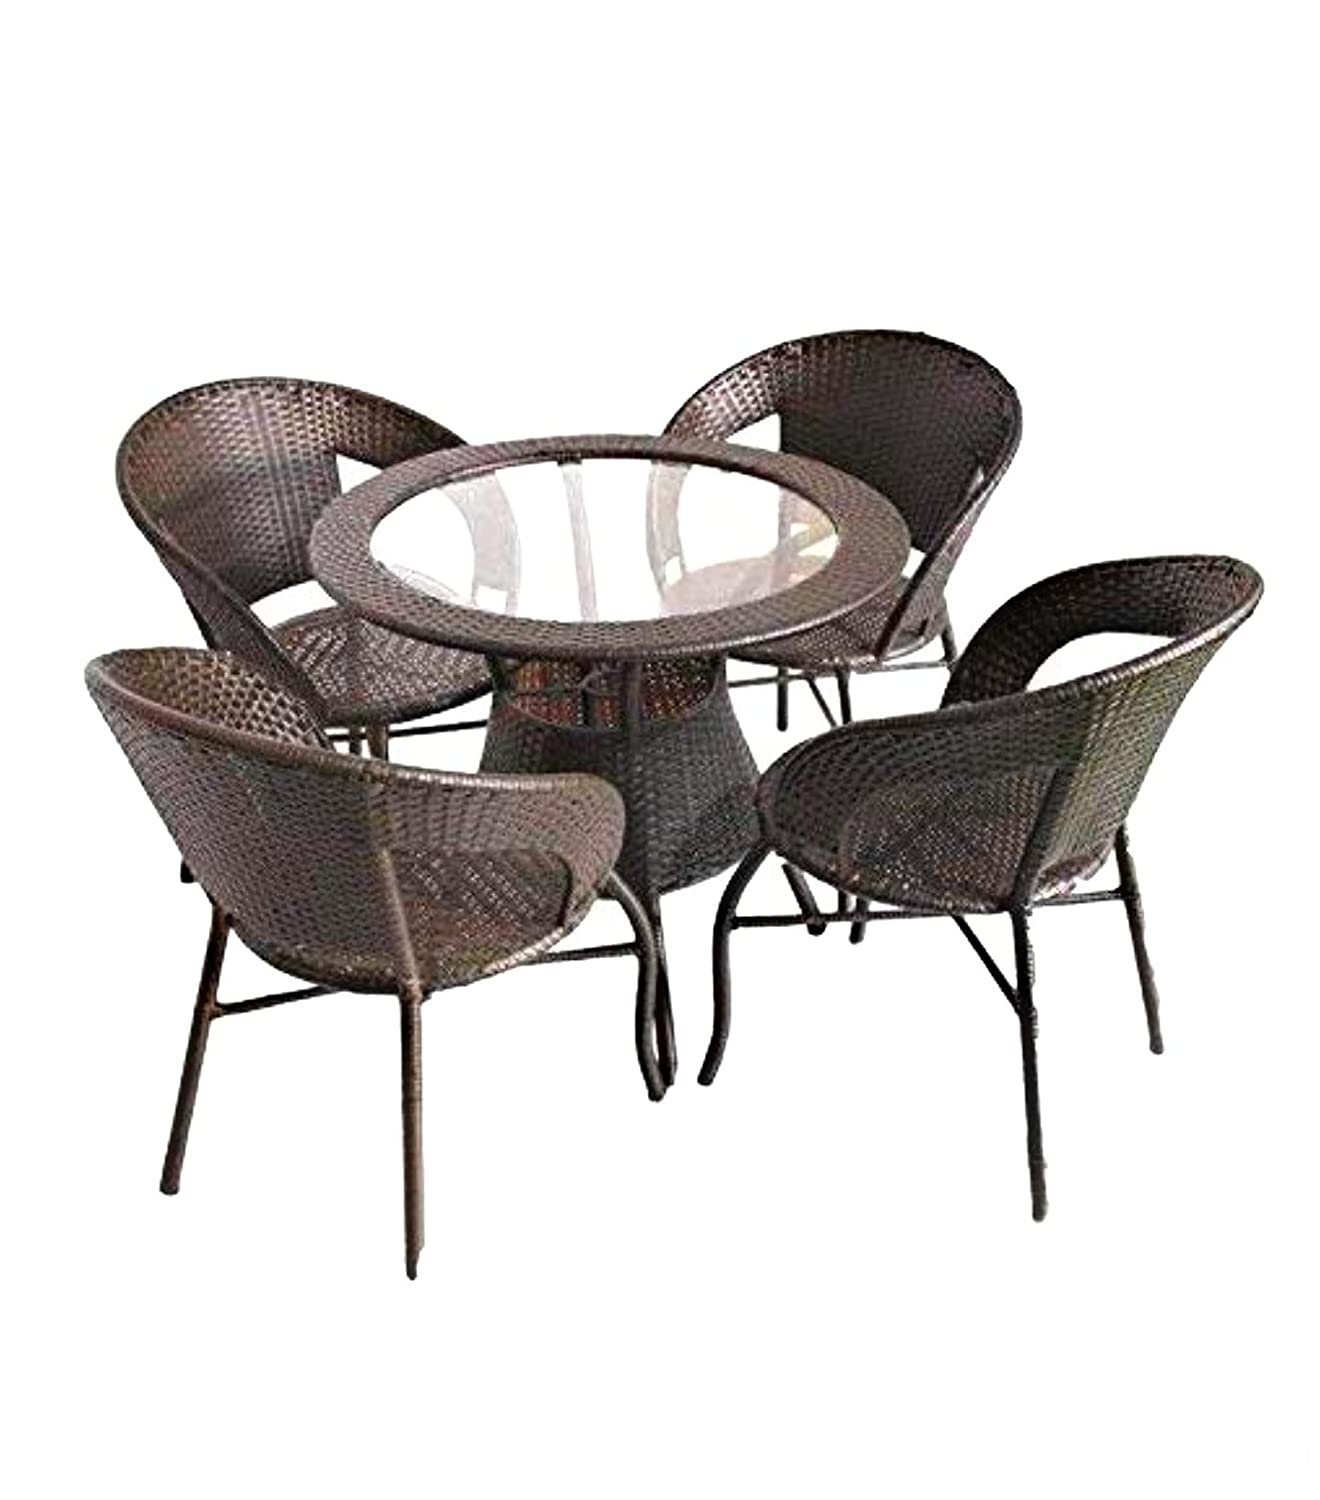 Wicker hub gc04 outdoor chair table two tone set of 4 amazon in home kitchen